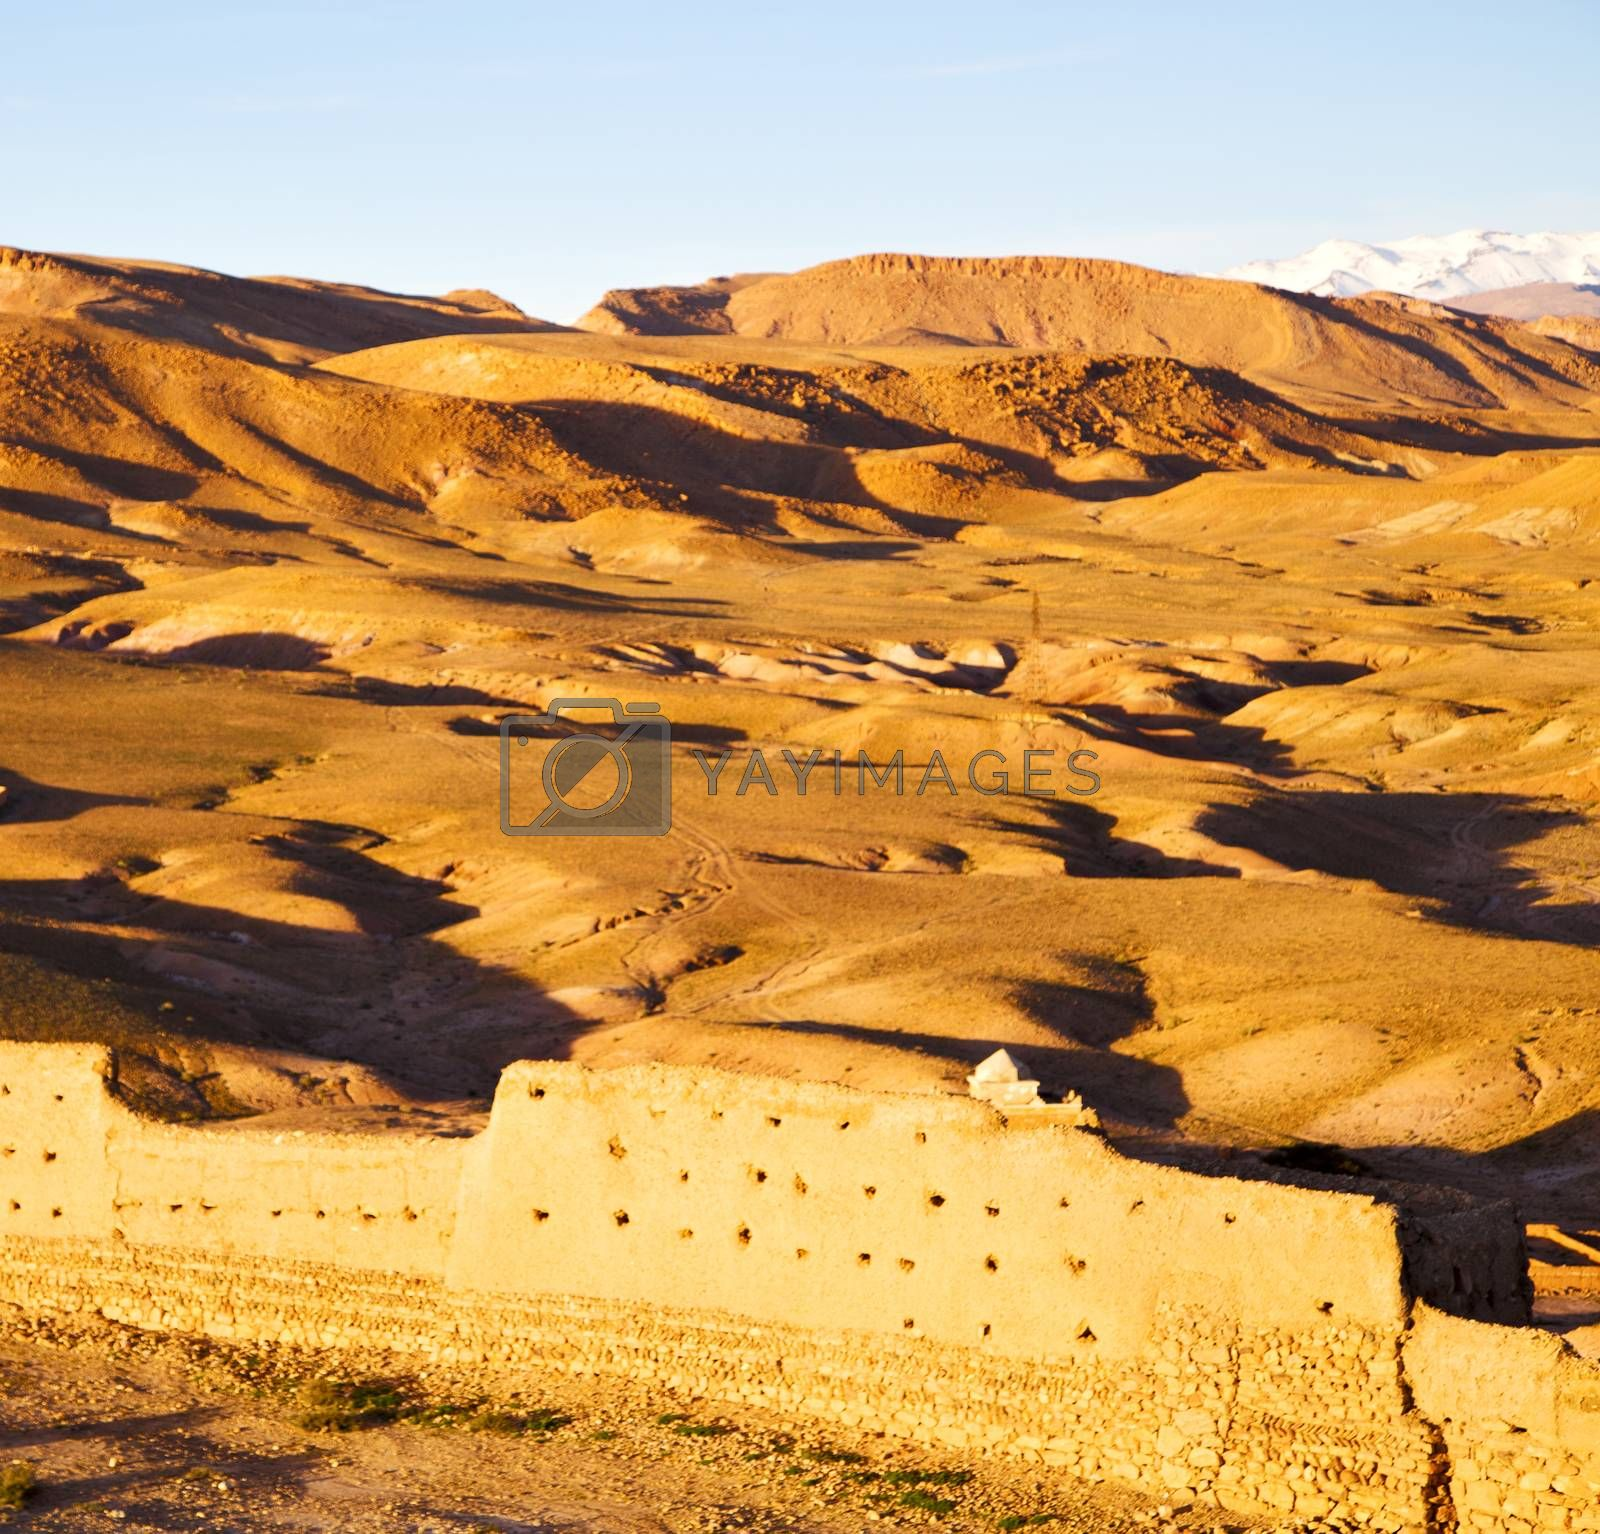 hill africa in morocco the old contruction   and   historical vi by lkpro